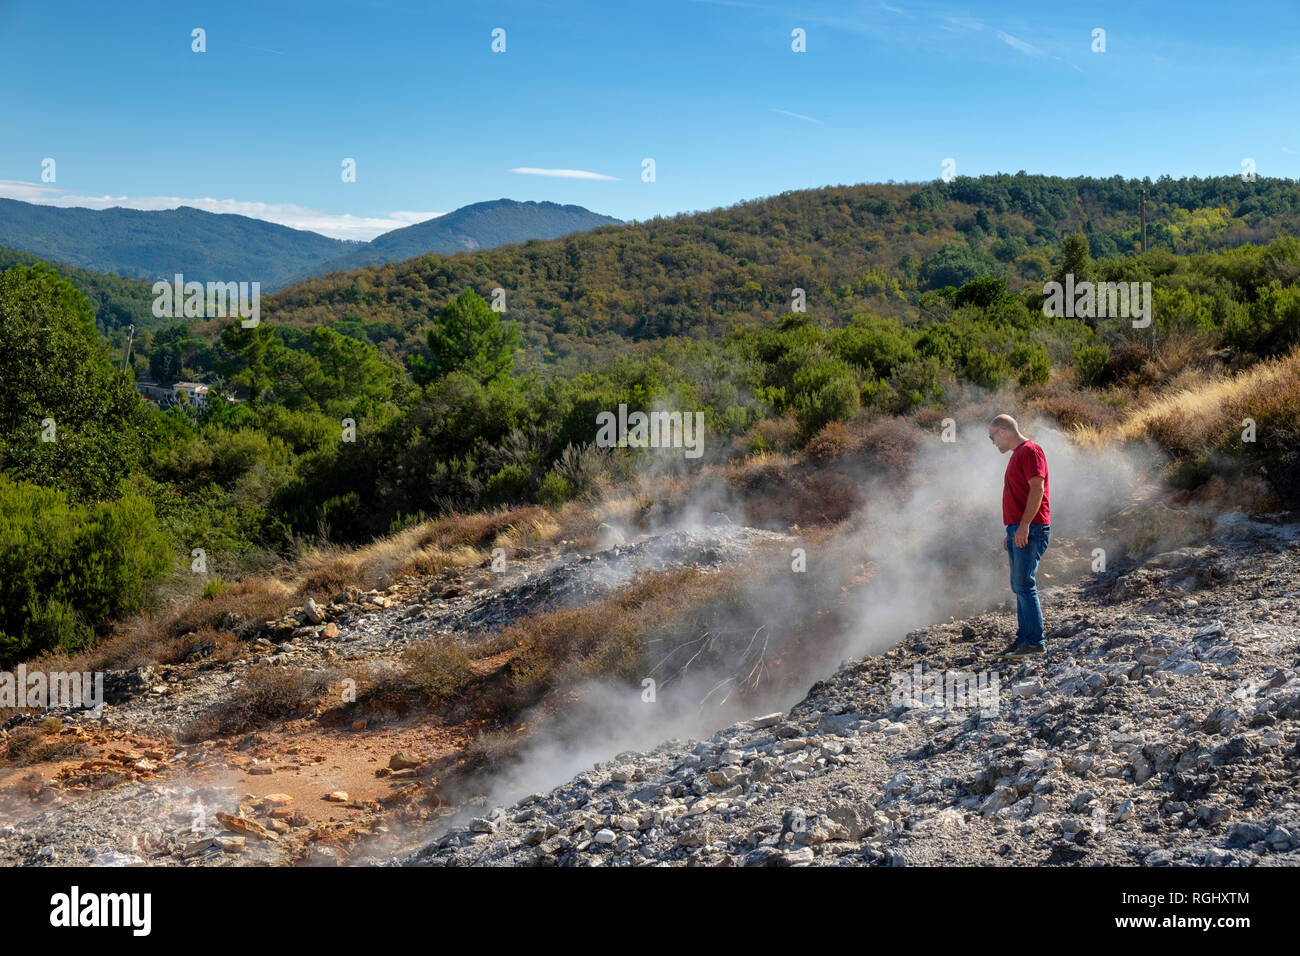 Italy, Tuscany, Colline Metallifere, Val di Cecina, Sasso Pisano, Valle delle Diavolo, hiker looking at geothermal field - Stock Image